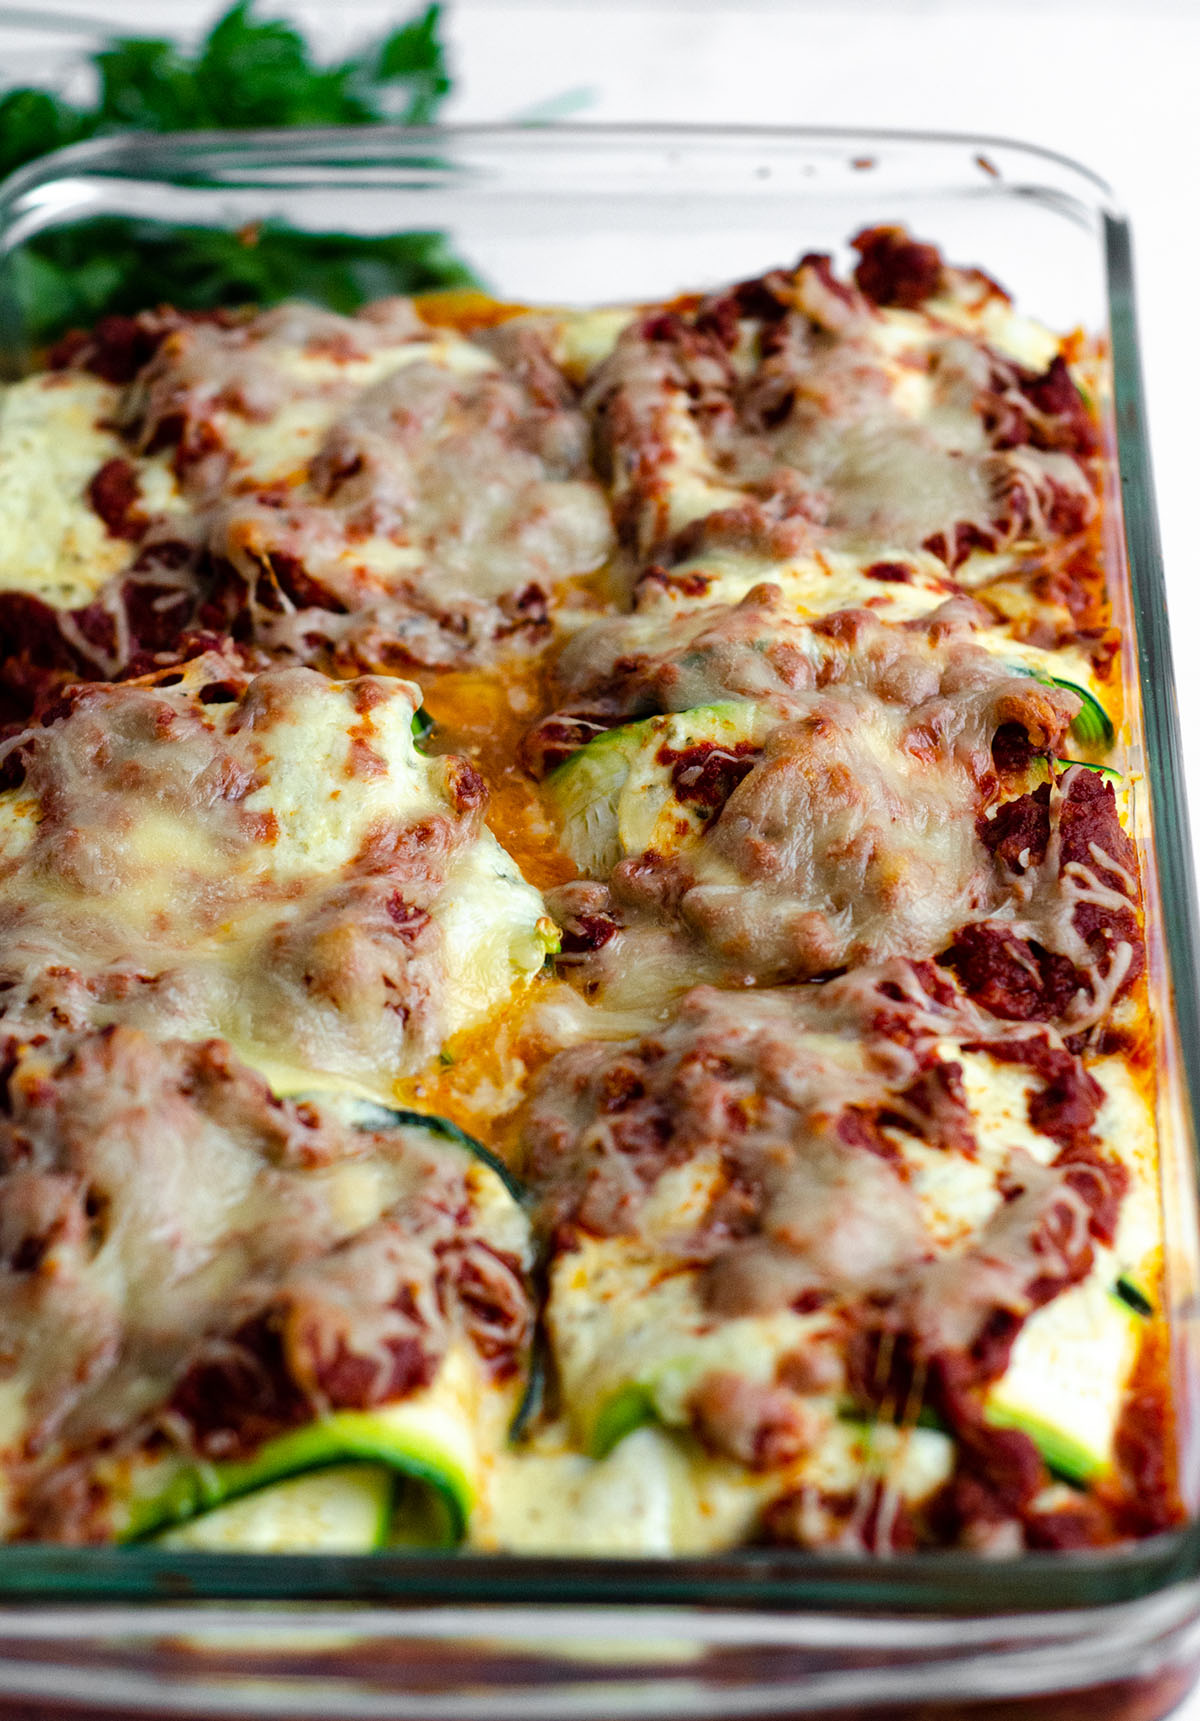 baked zucchini ravioli in a baking dish ready to serve